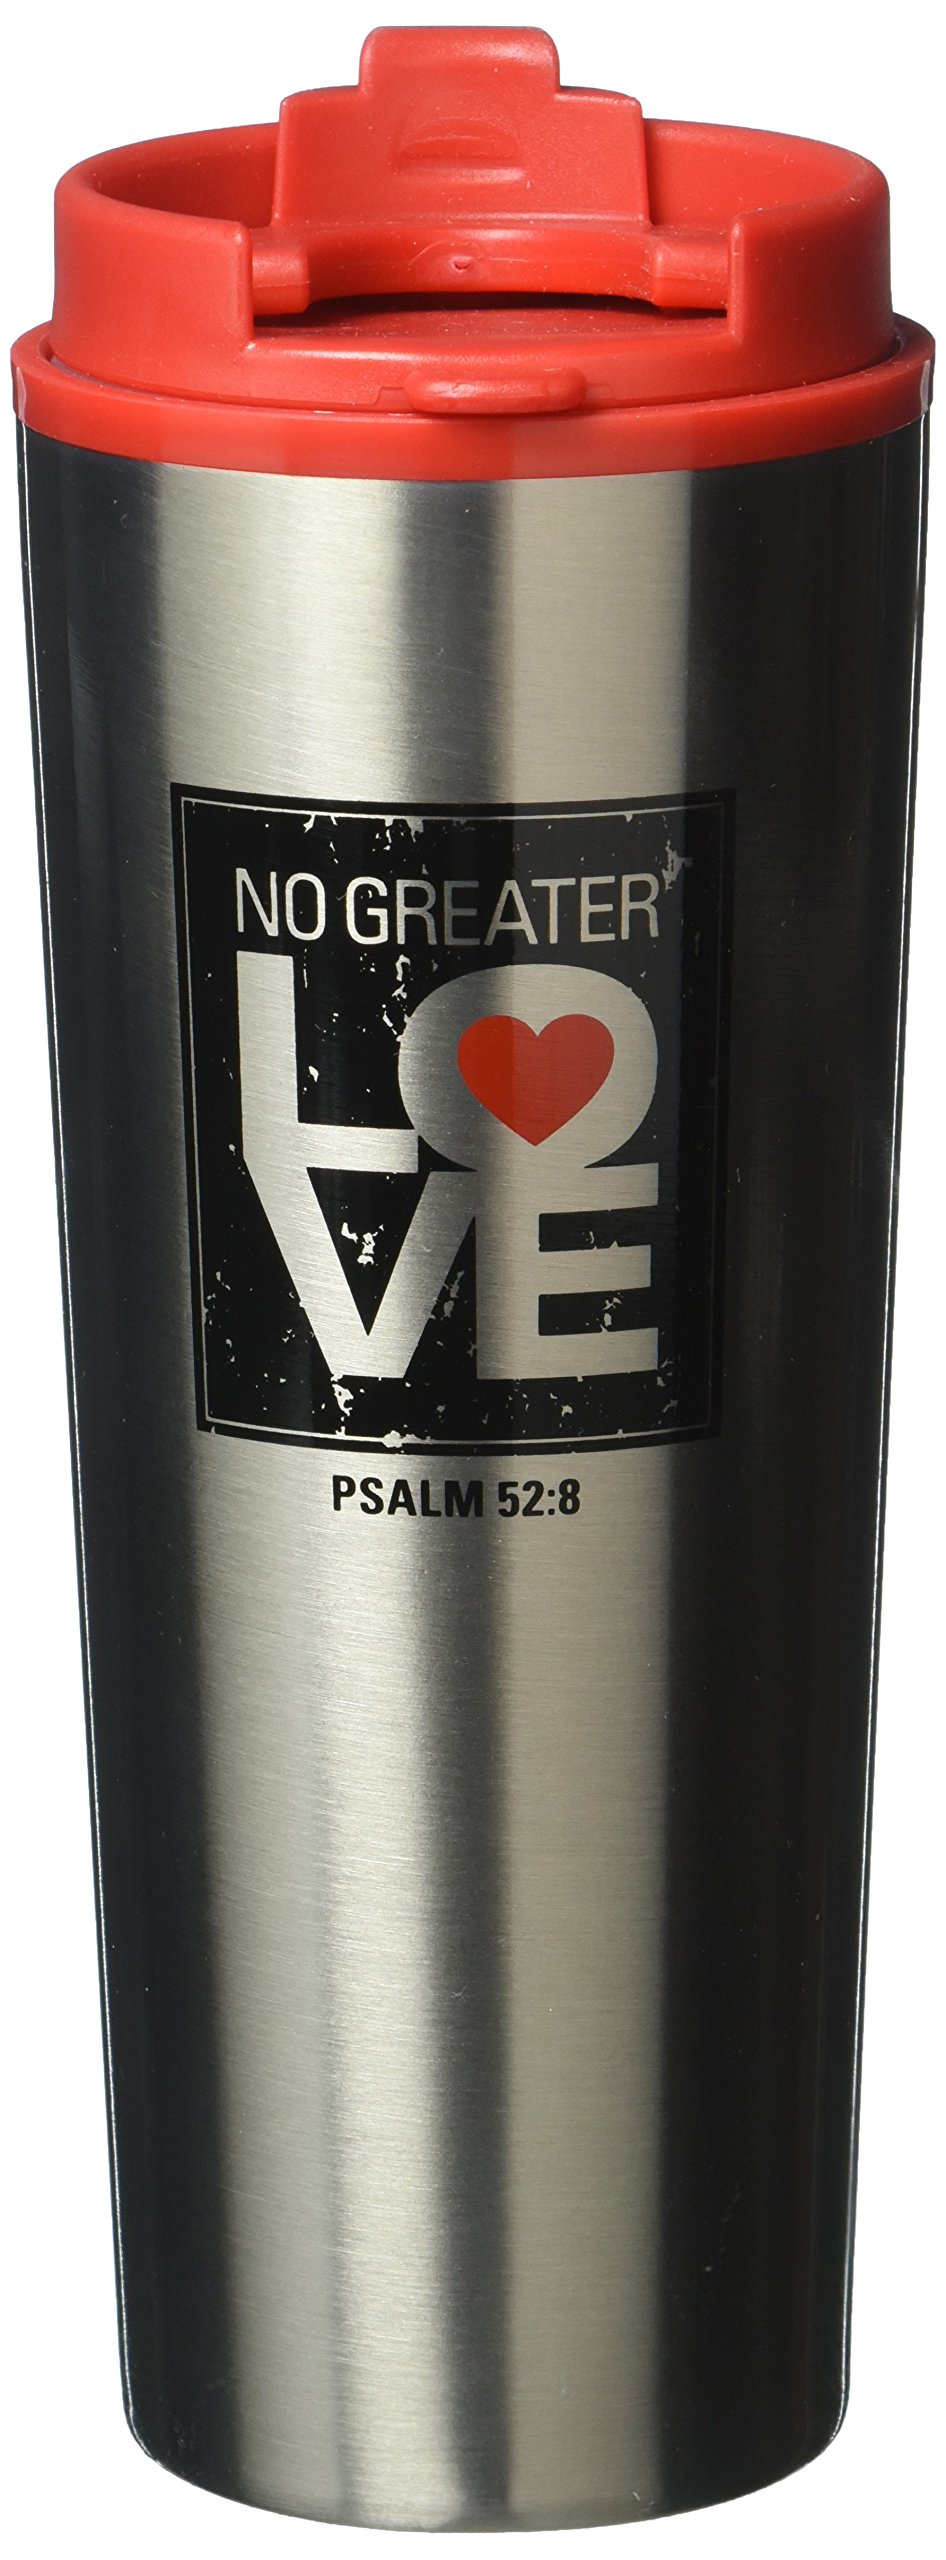 Lighthouse Christian Products No Greater Love Stainless Steel Tumbler Mug, 16 oz